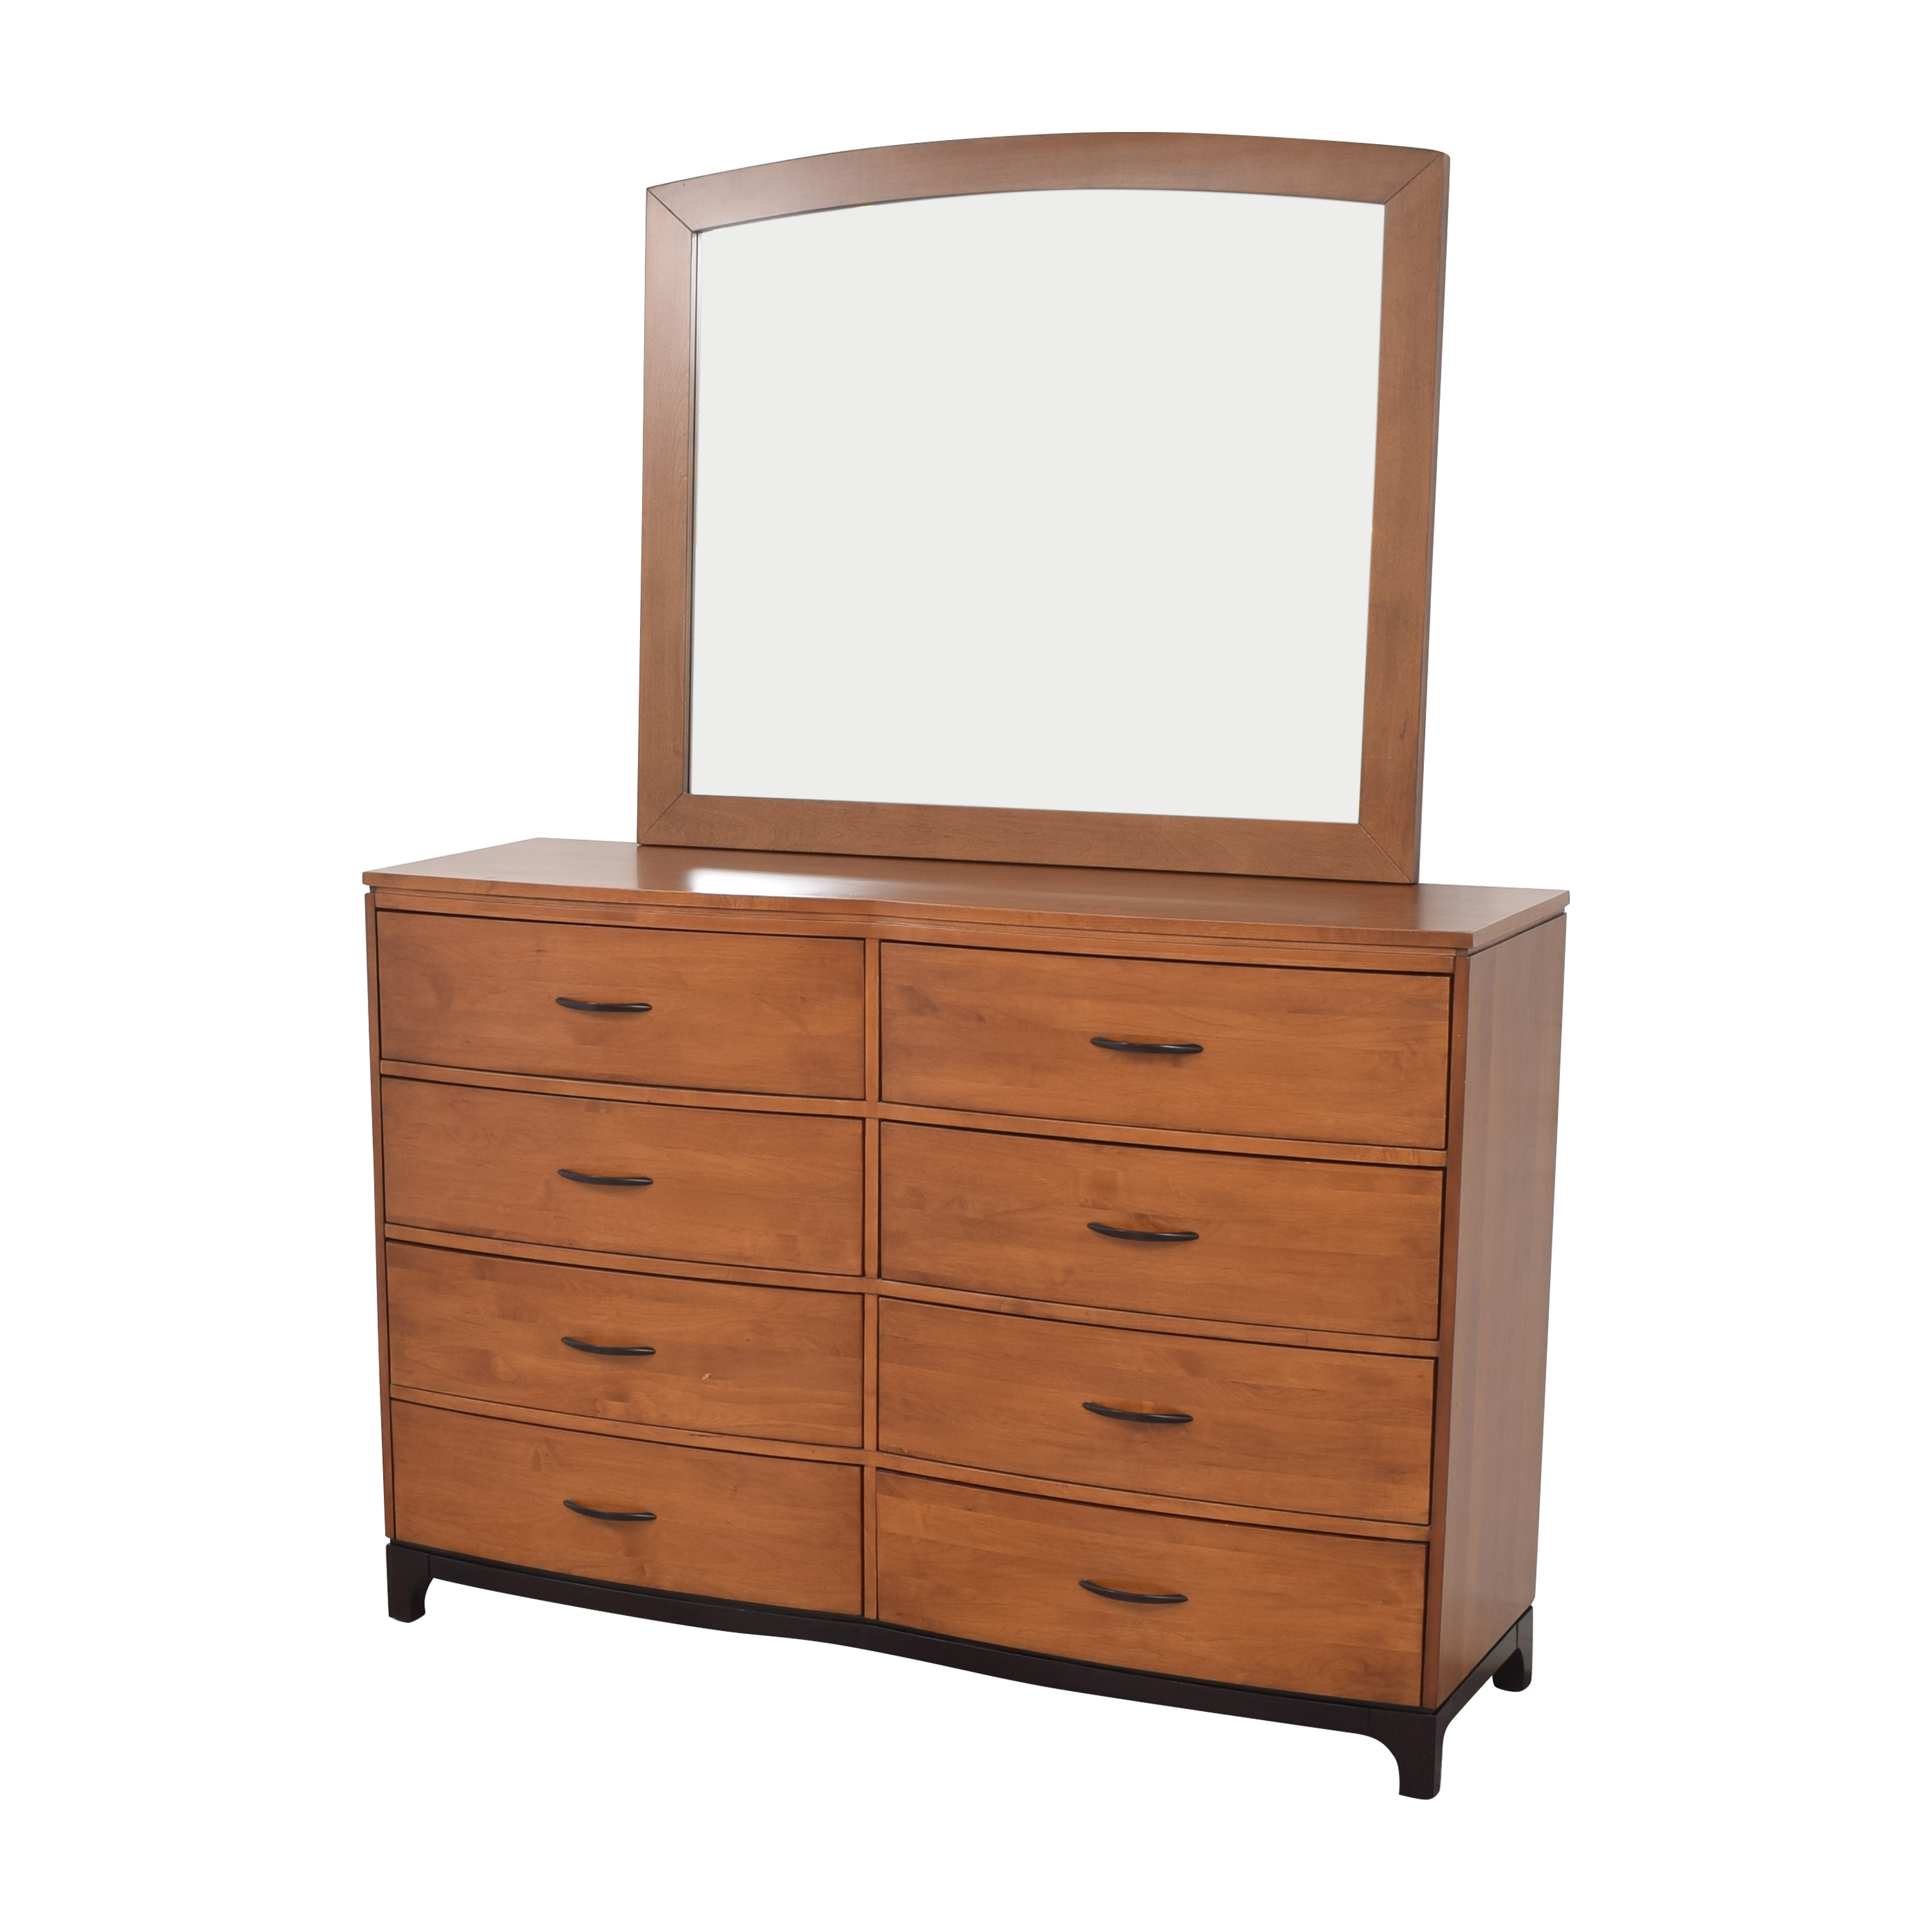 Pottery Barn Pottery Barn Eight Drawer Dresser with Mirror for sale